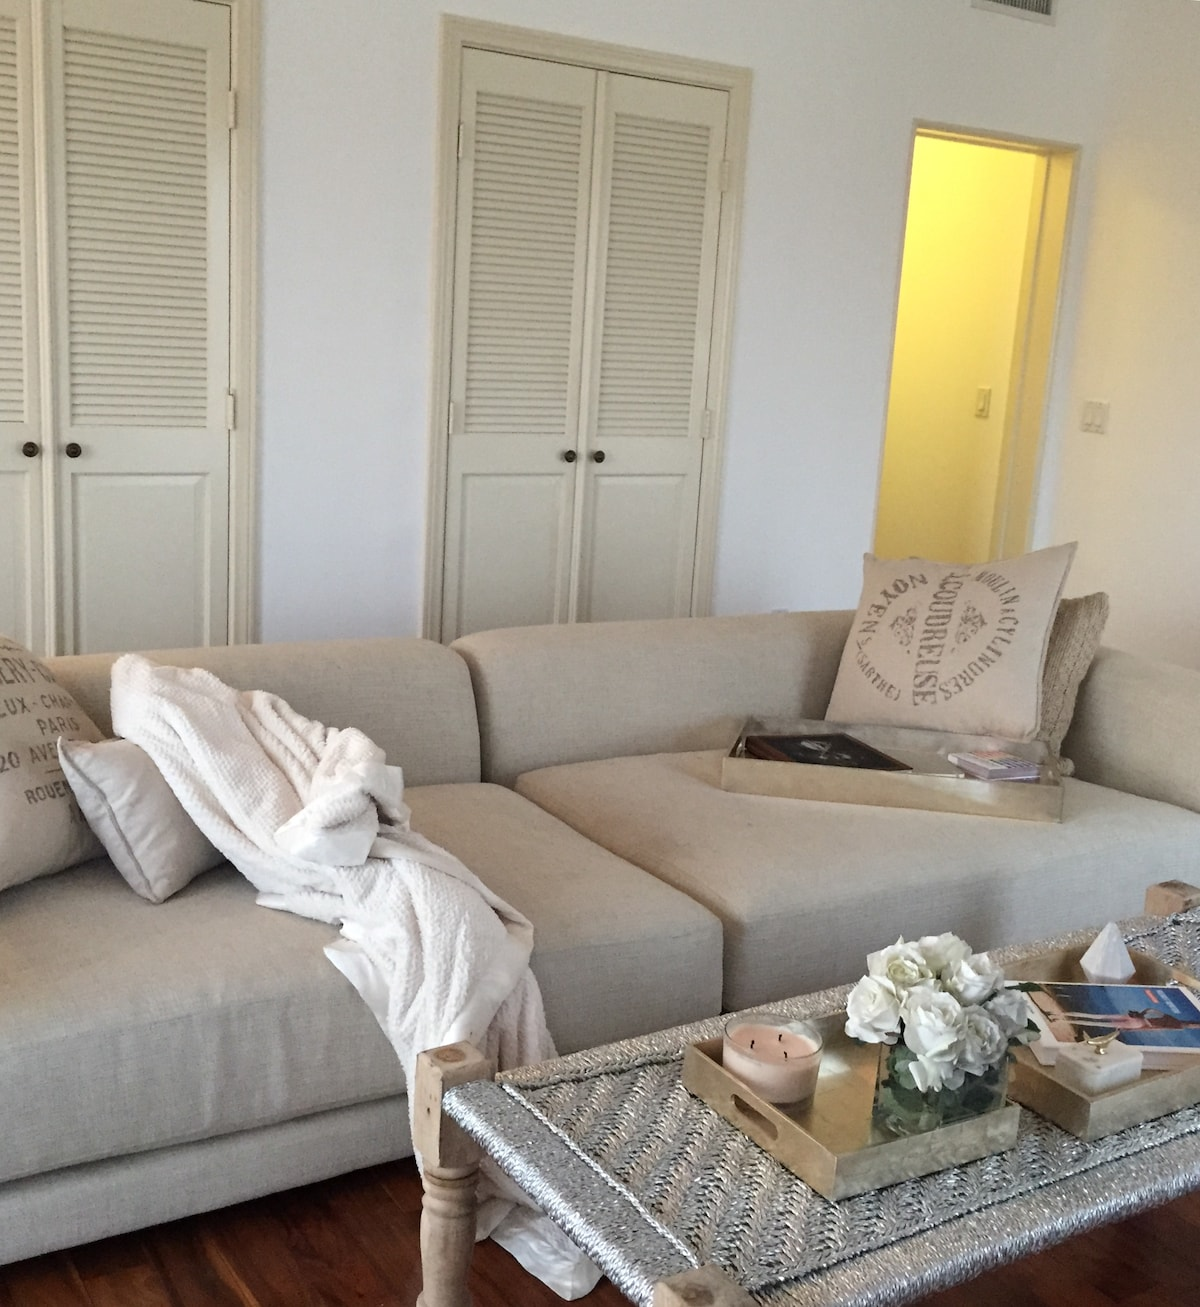 Bedroom 4 Blocks from Rodeo Drive